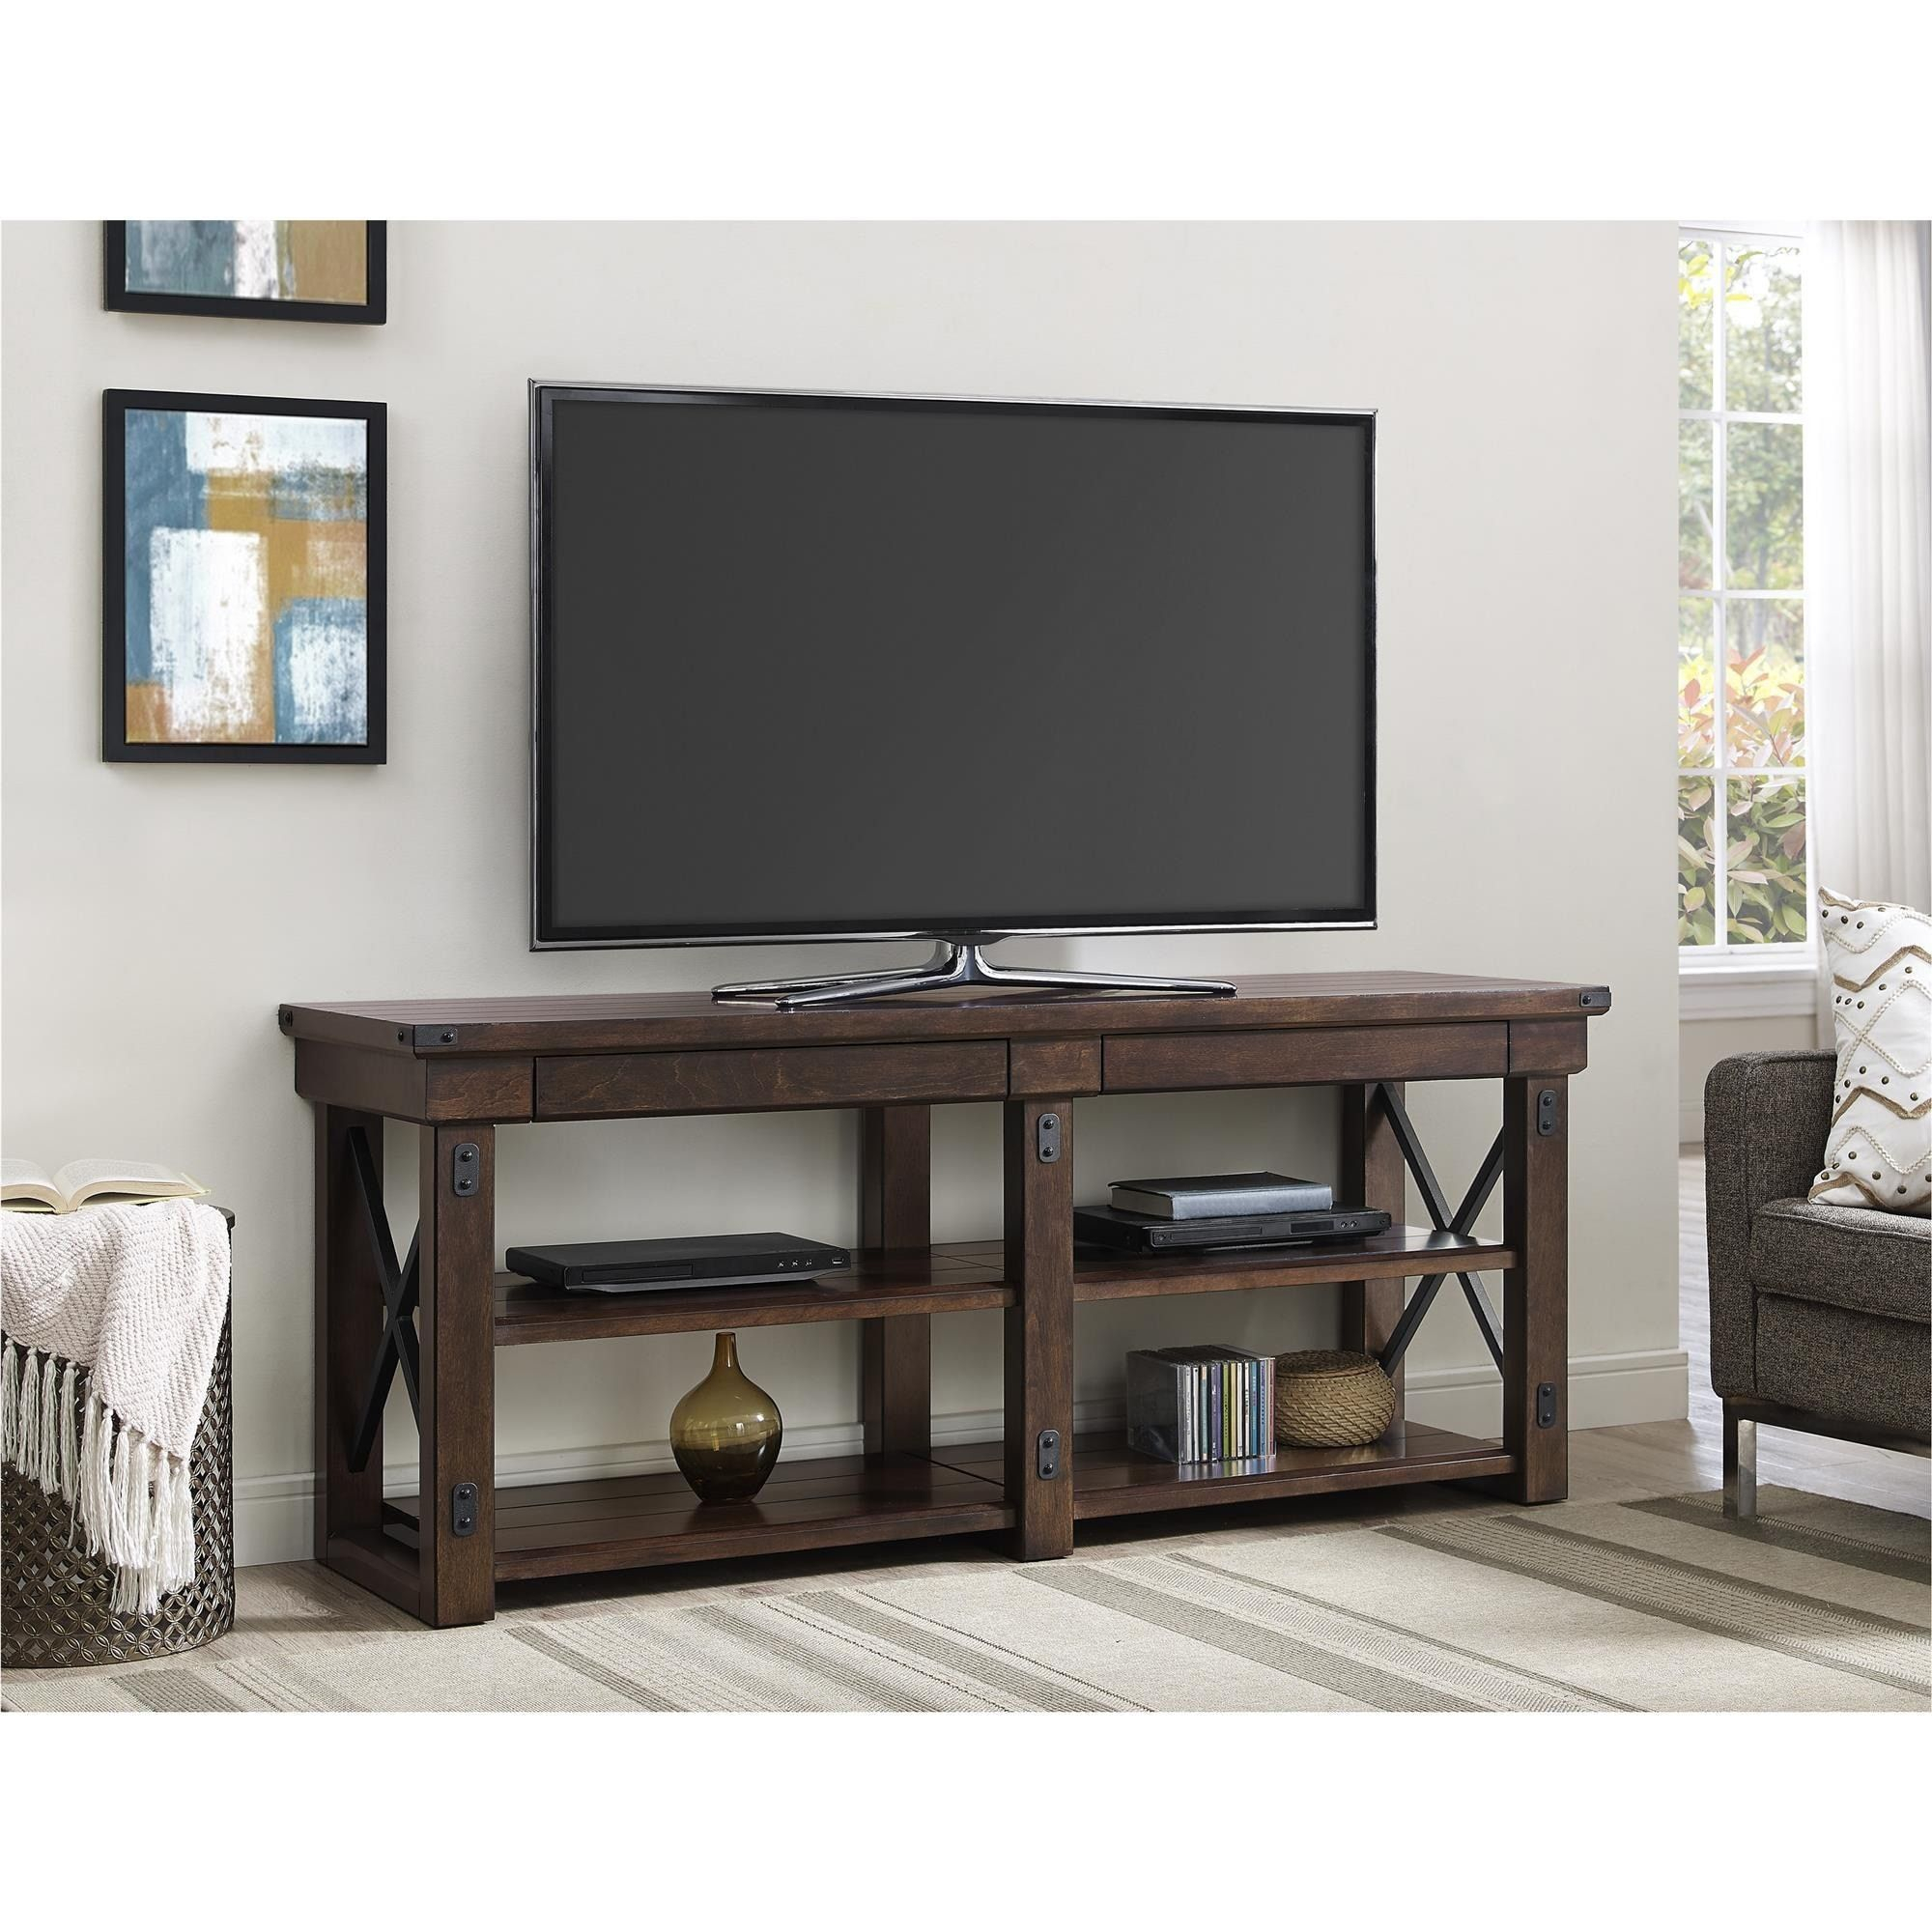 Ameriwood Home Wildwood Mahogany Veneer 65 Inch Tv Stand (65 Inch Tv With Regard To Annabelle Cream 70 Inch Tv Stands (View 21 of 30)